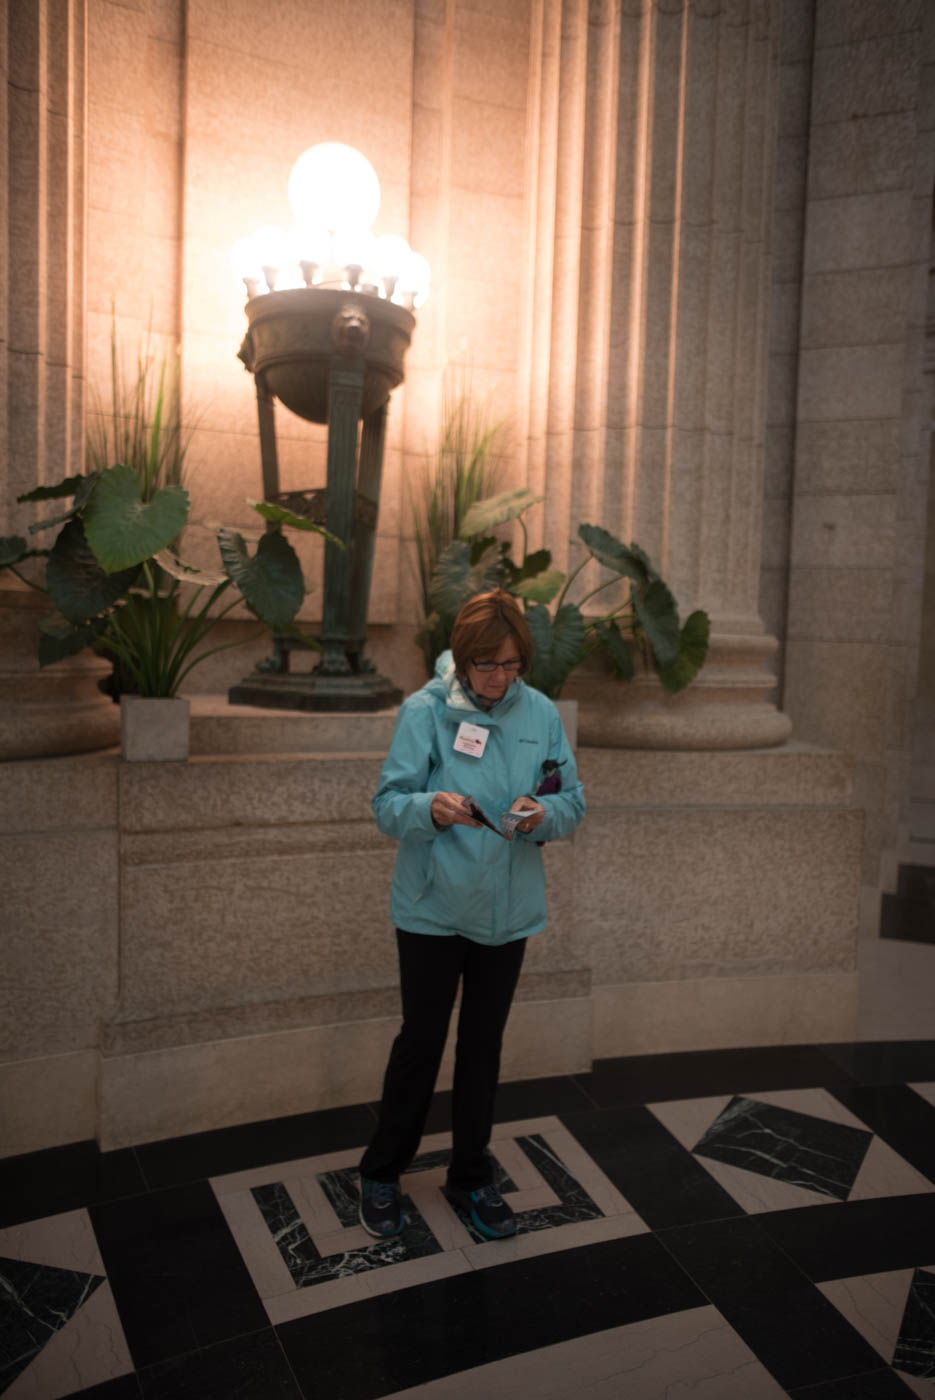 In the capitol building